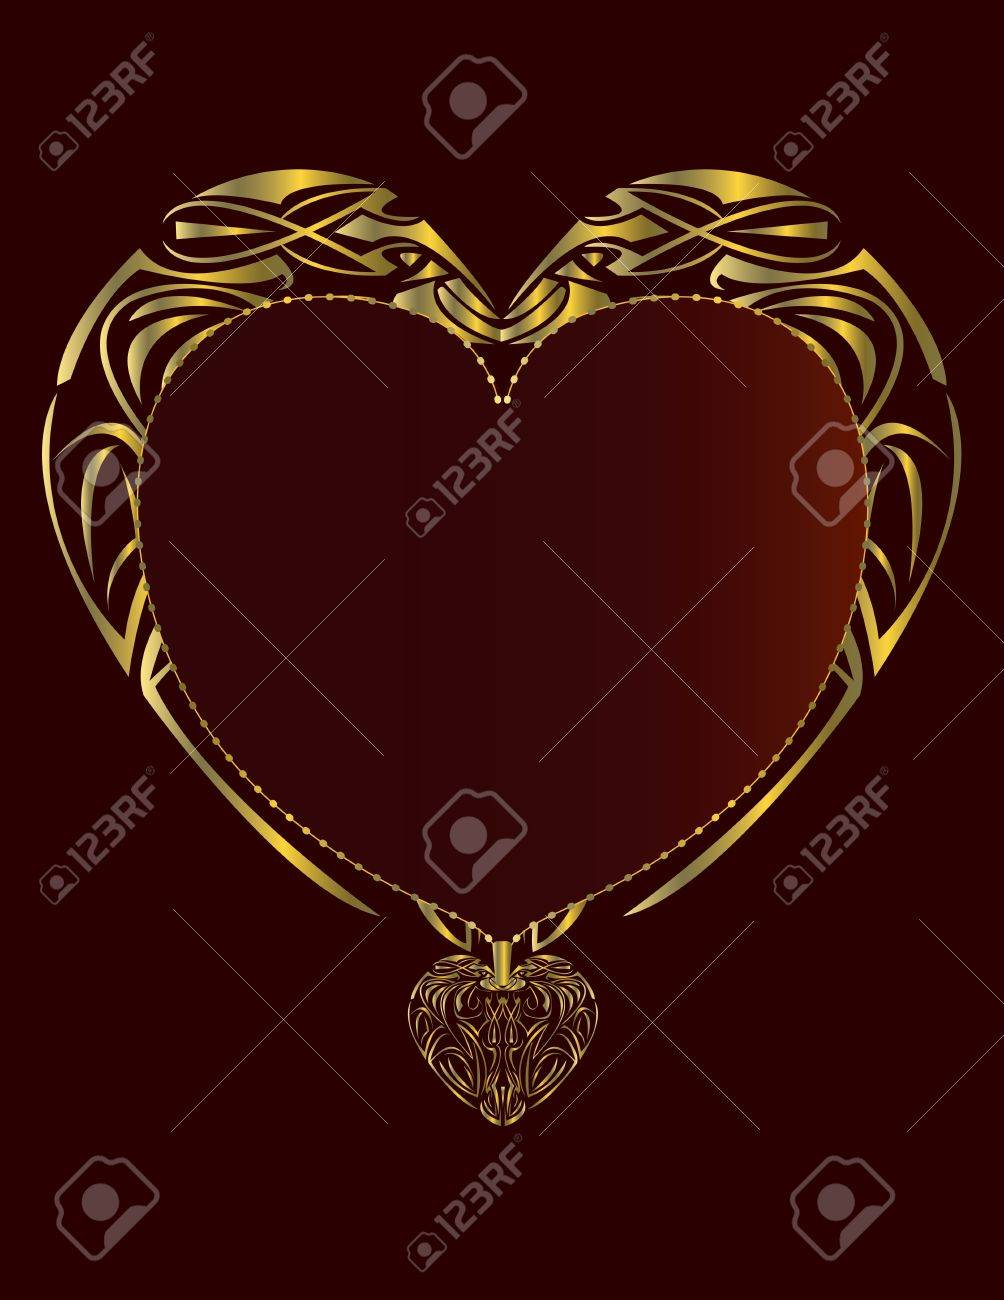 Gold heart frame on a red background page Stock Photo - 3464211